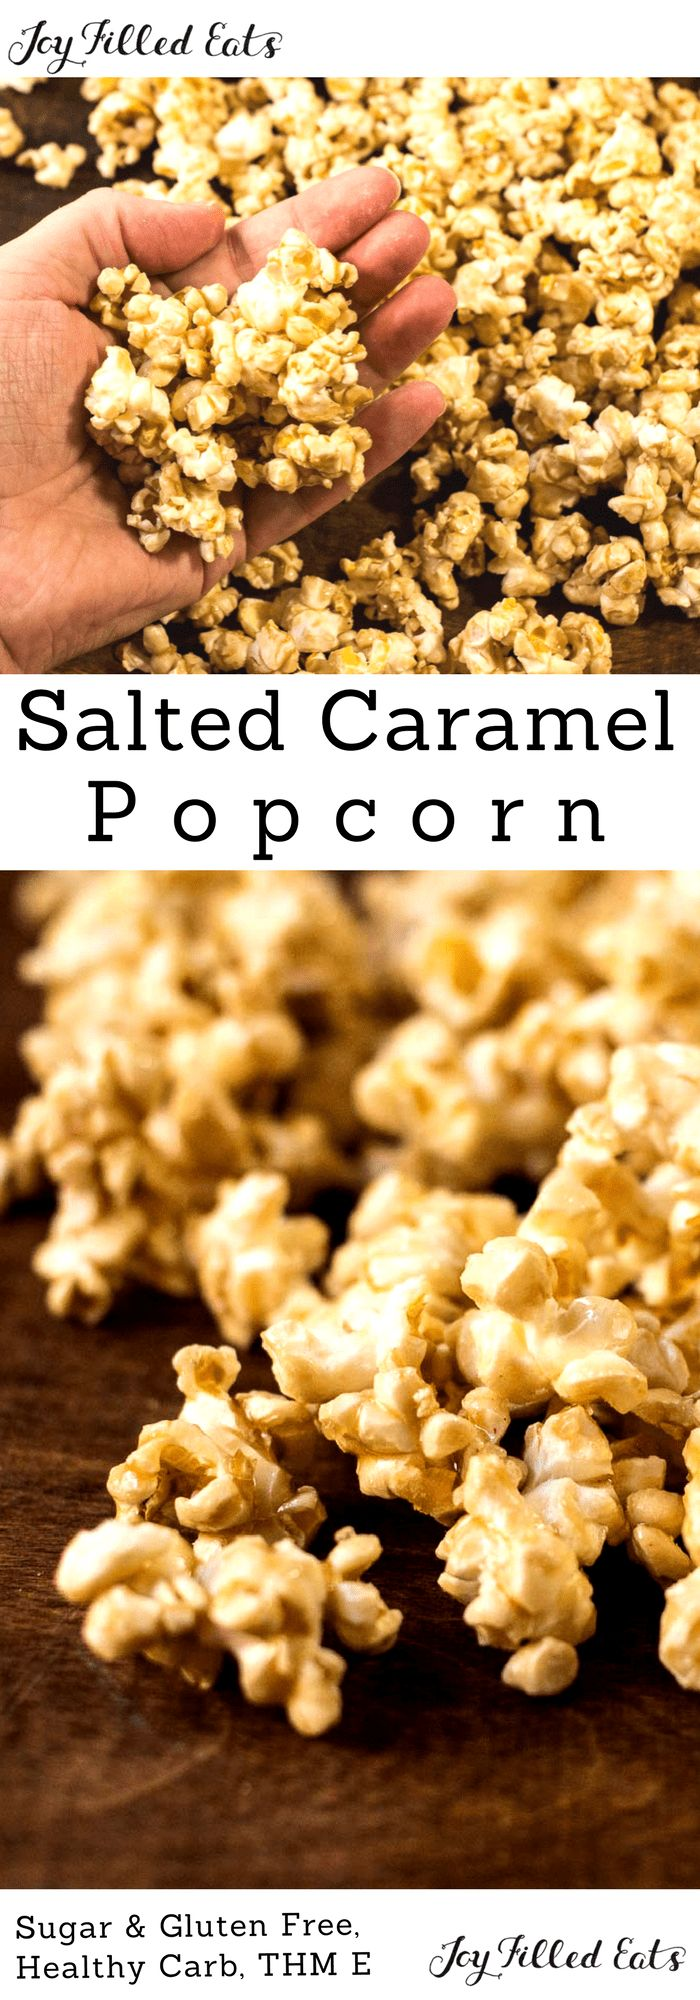 Salted Caramel Popcorn - THM E, Sugar Free, Low Fat, Gluten Free, 5 ingredients, fast and easy! My Salted Caramel Popcorn is a delight. It only takes 5 ingredients and 15 minutes to whip up a batch of this sugar-free Trim healthy mama friendly treat.